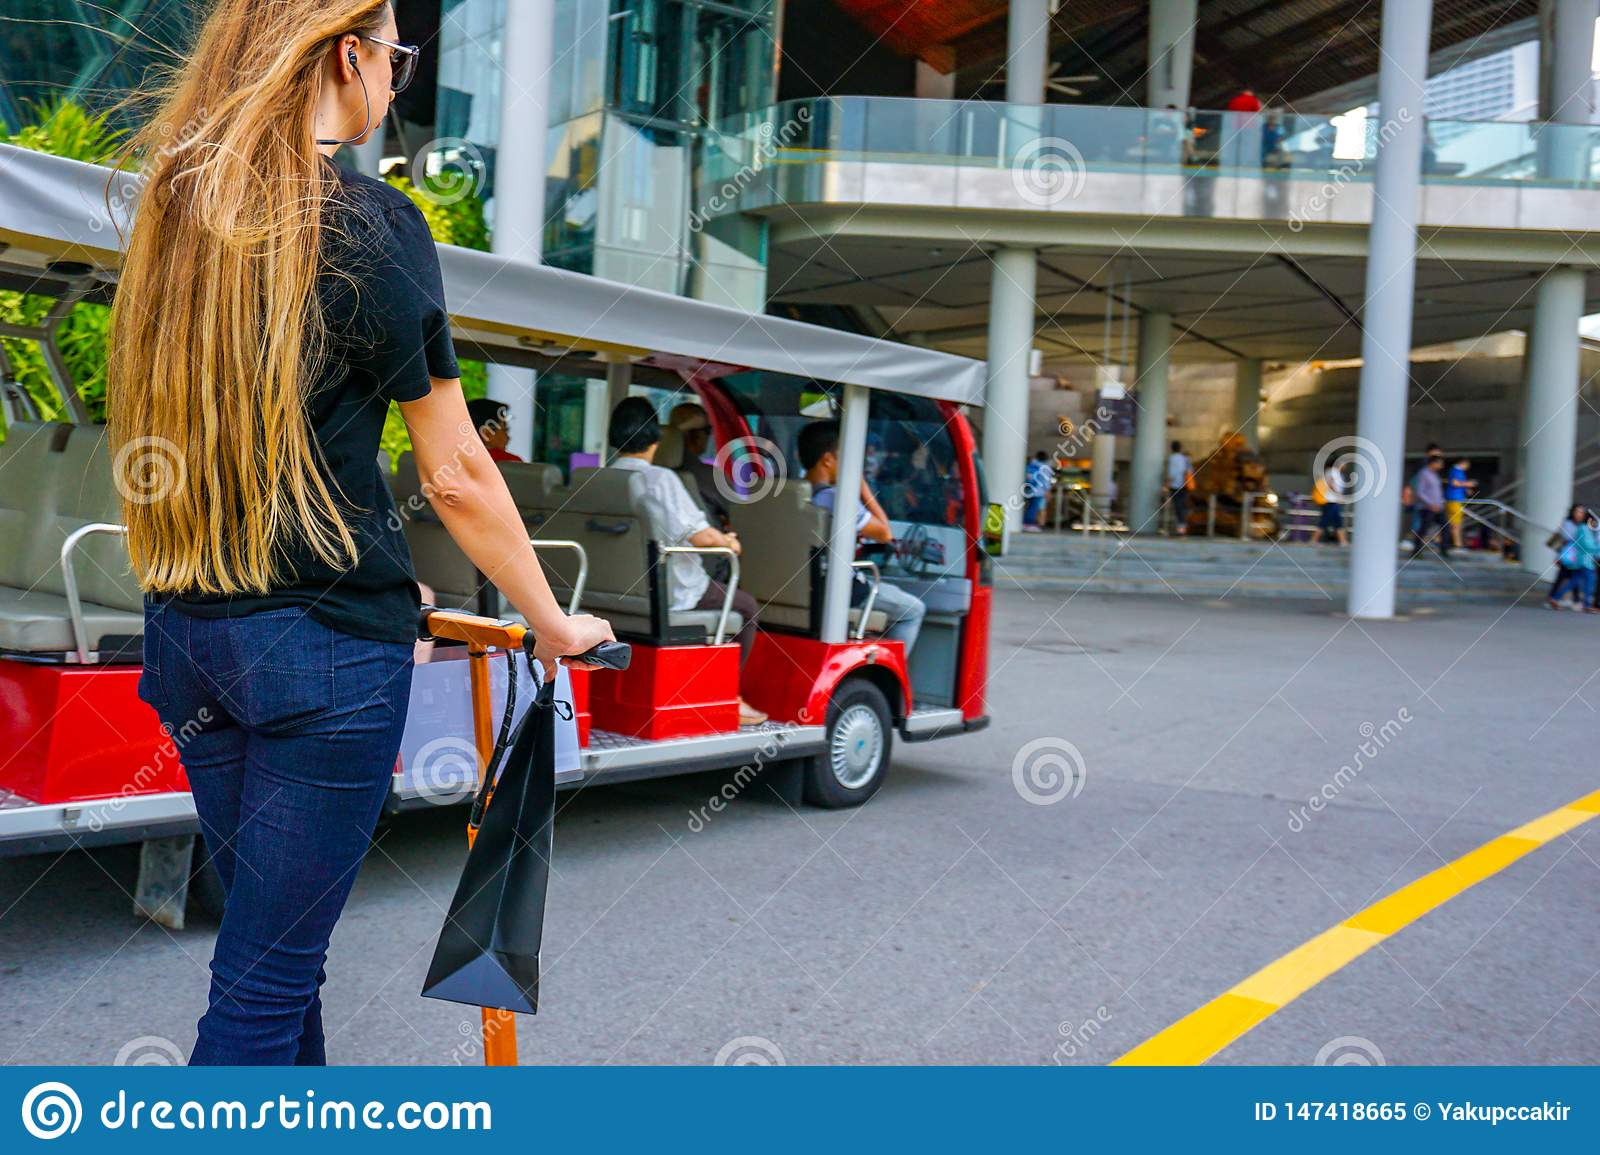 Young woman with long hairs on electric scooter. The girl on the electric scooter drinks coffee.